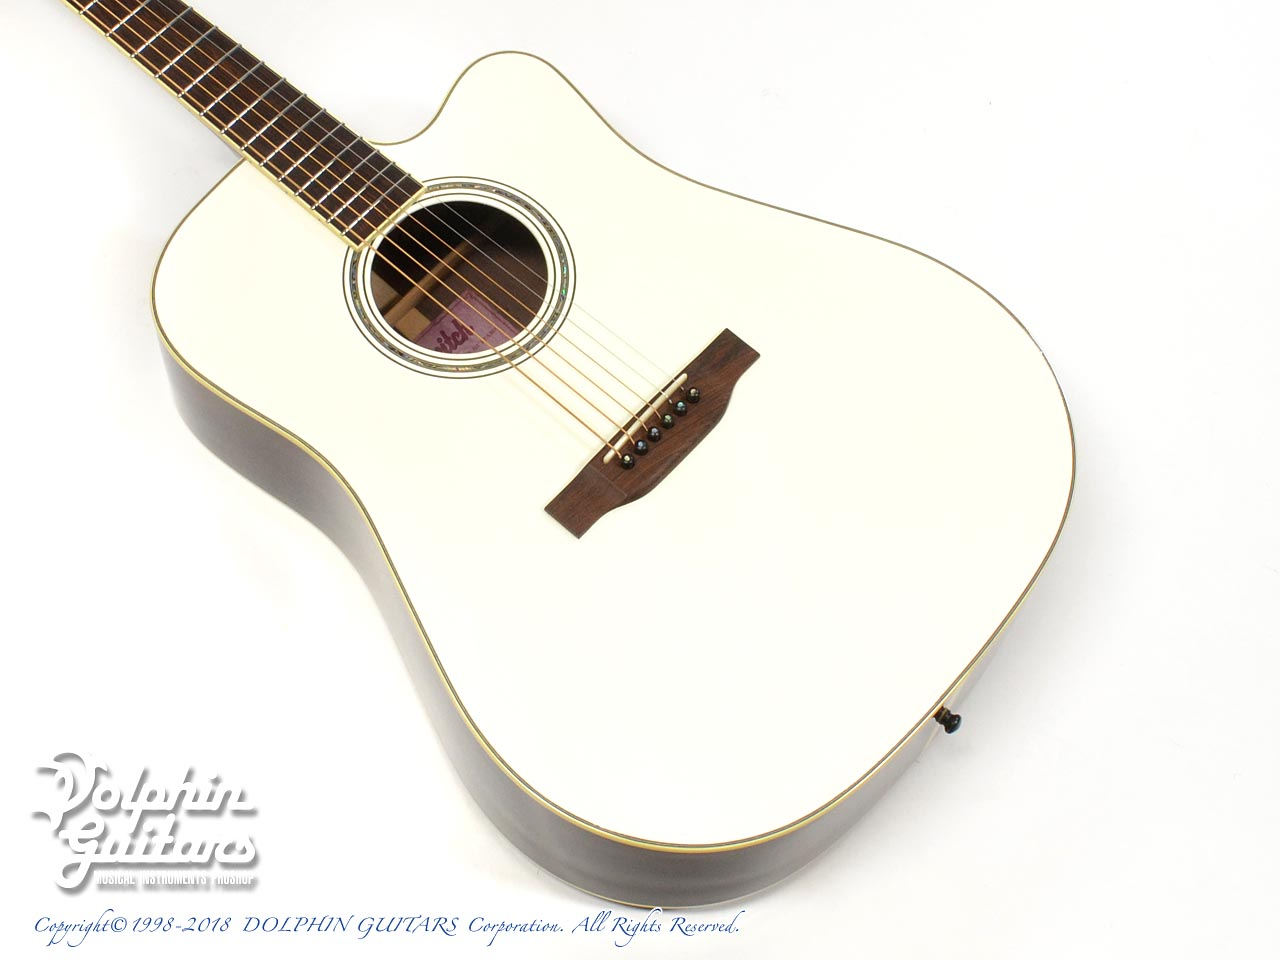 SWITCH: SCD-3C Caa Limited (Sitka Spruce & Cocobolo) (Pearl White Top)